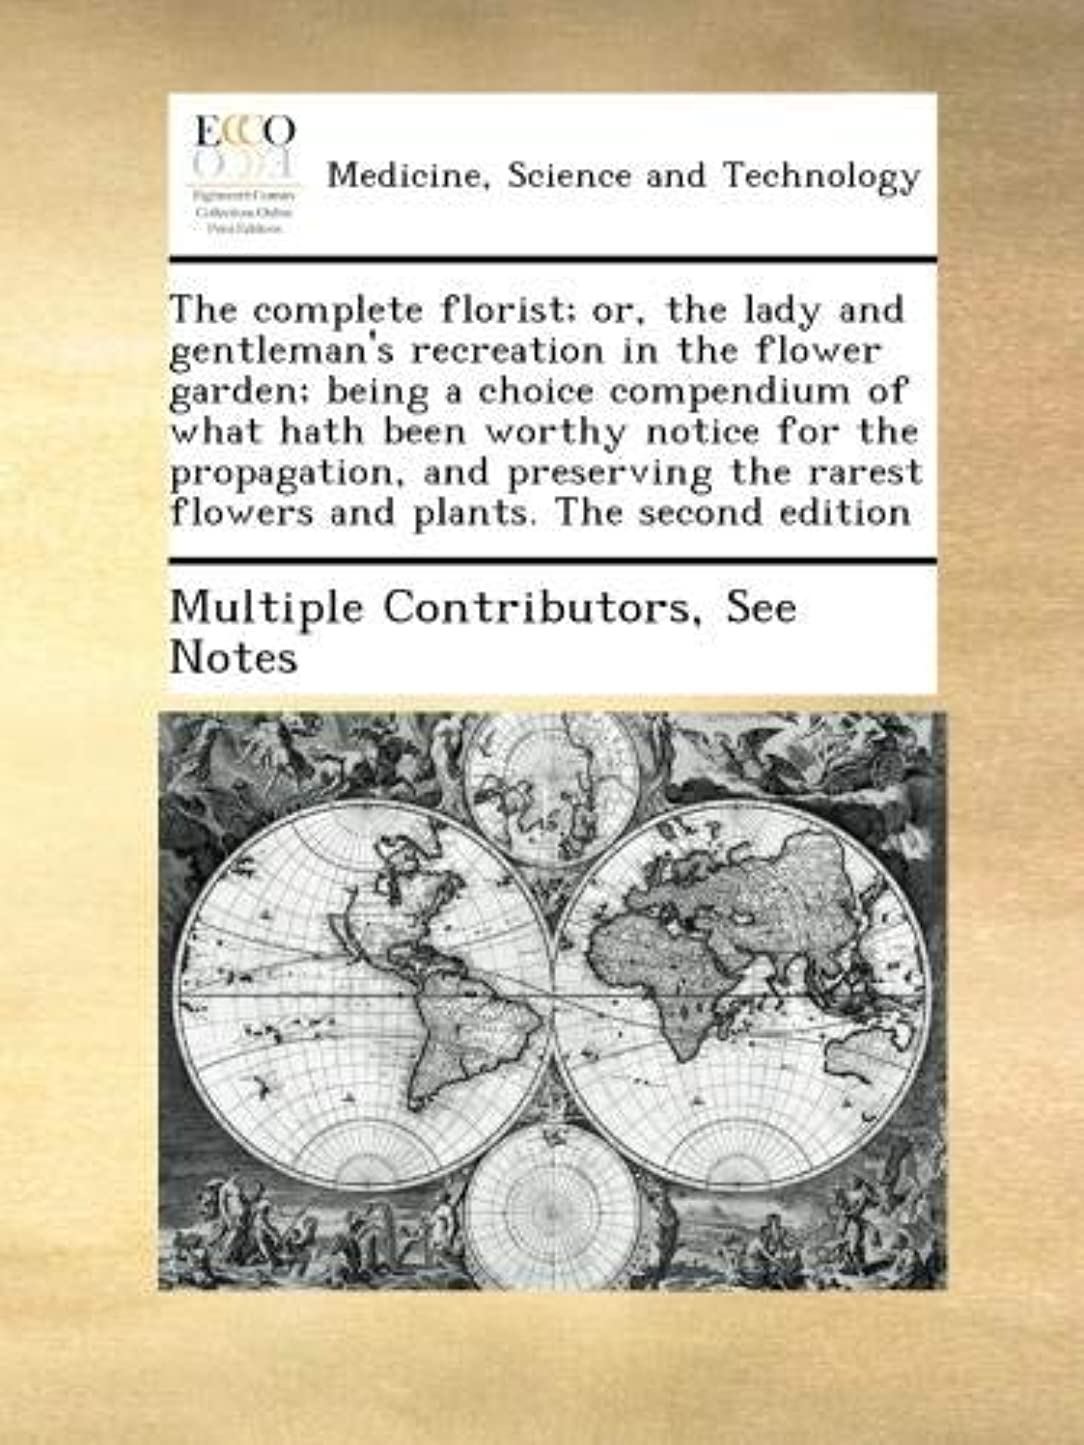 スクラブ一般的な化合物The complete florist; or, the lady and gentleman's recreation in the flower garden; being a choice compendium of what hath been worthy notice for the propagation, and preserving the rarest flowers and plants. The second edition